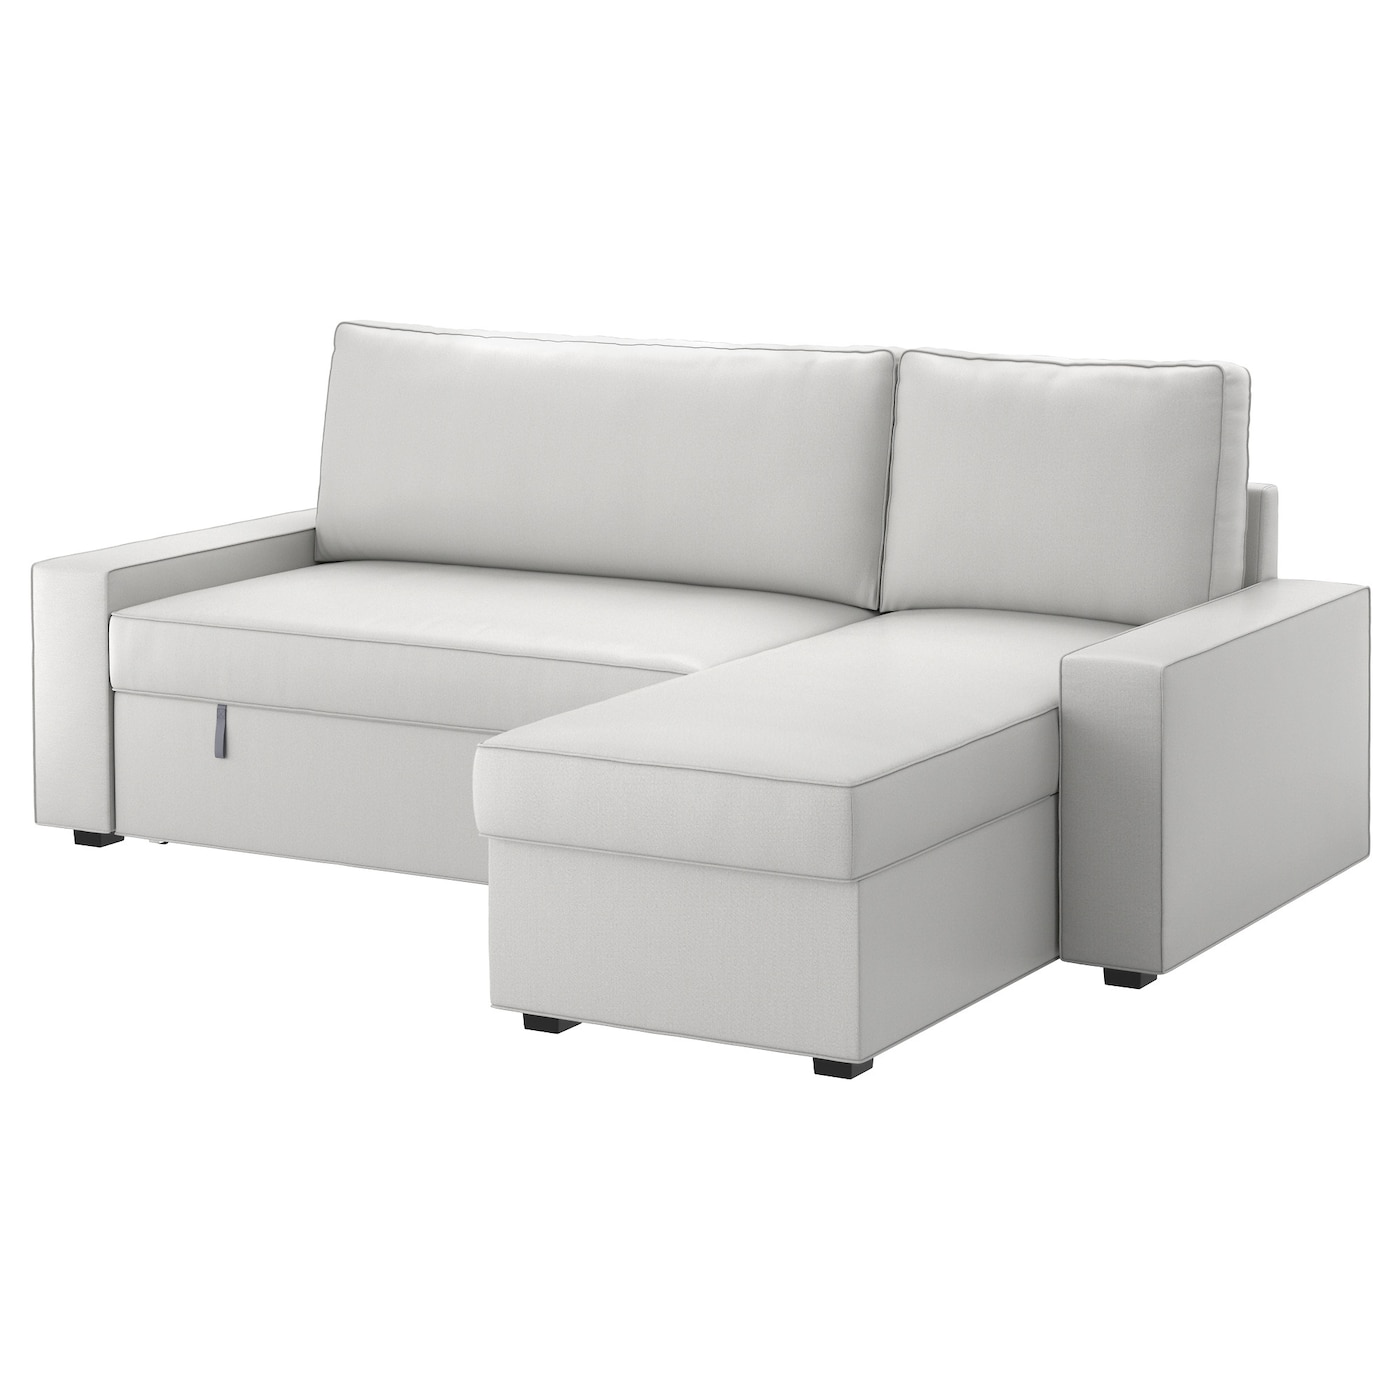 Vilasund sofa bed with chaise longue ramna light grey ikea for Chaise en osier ikea